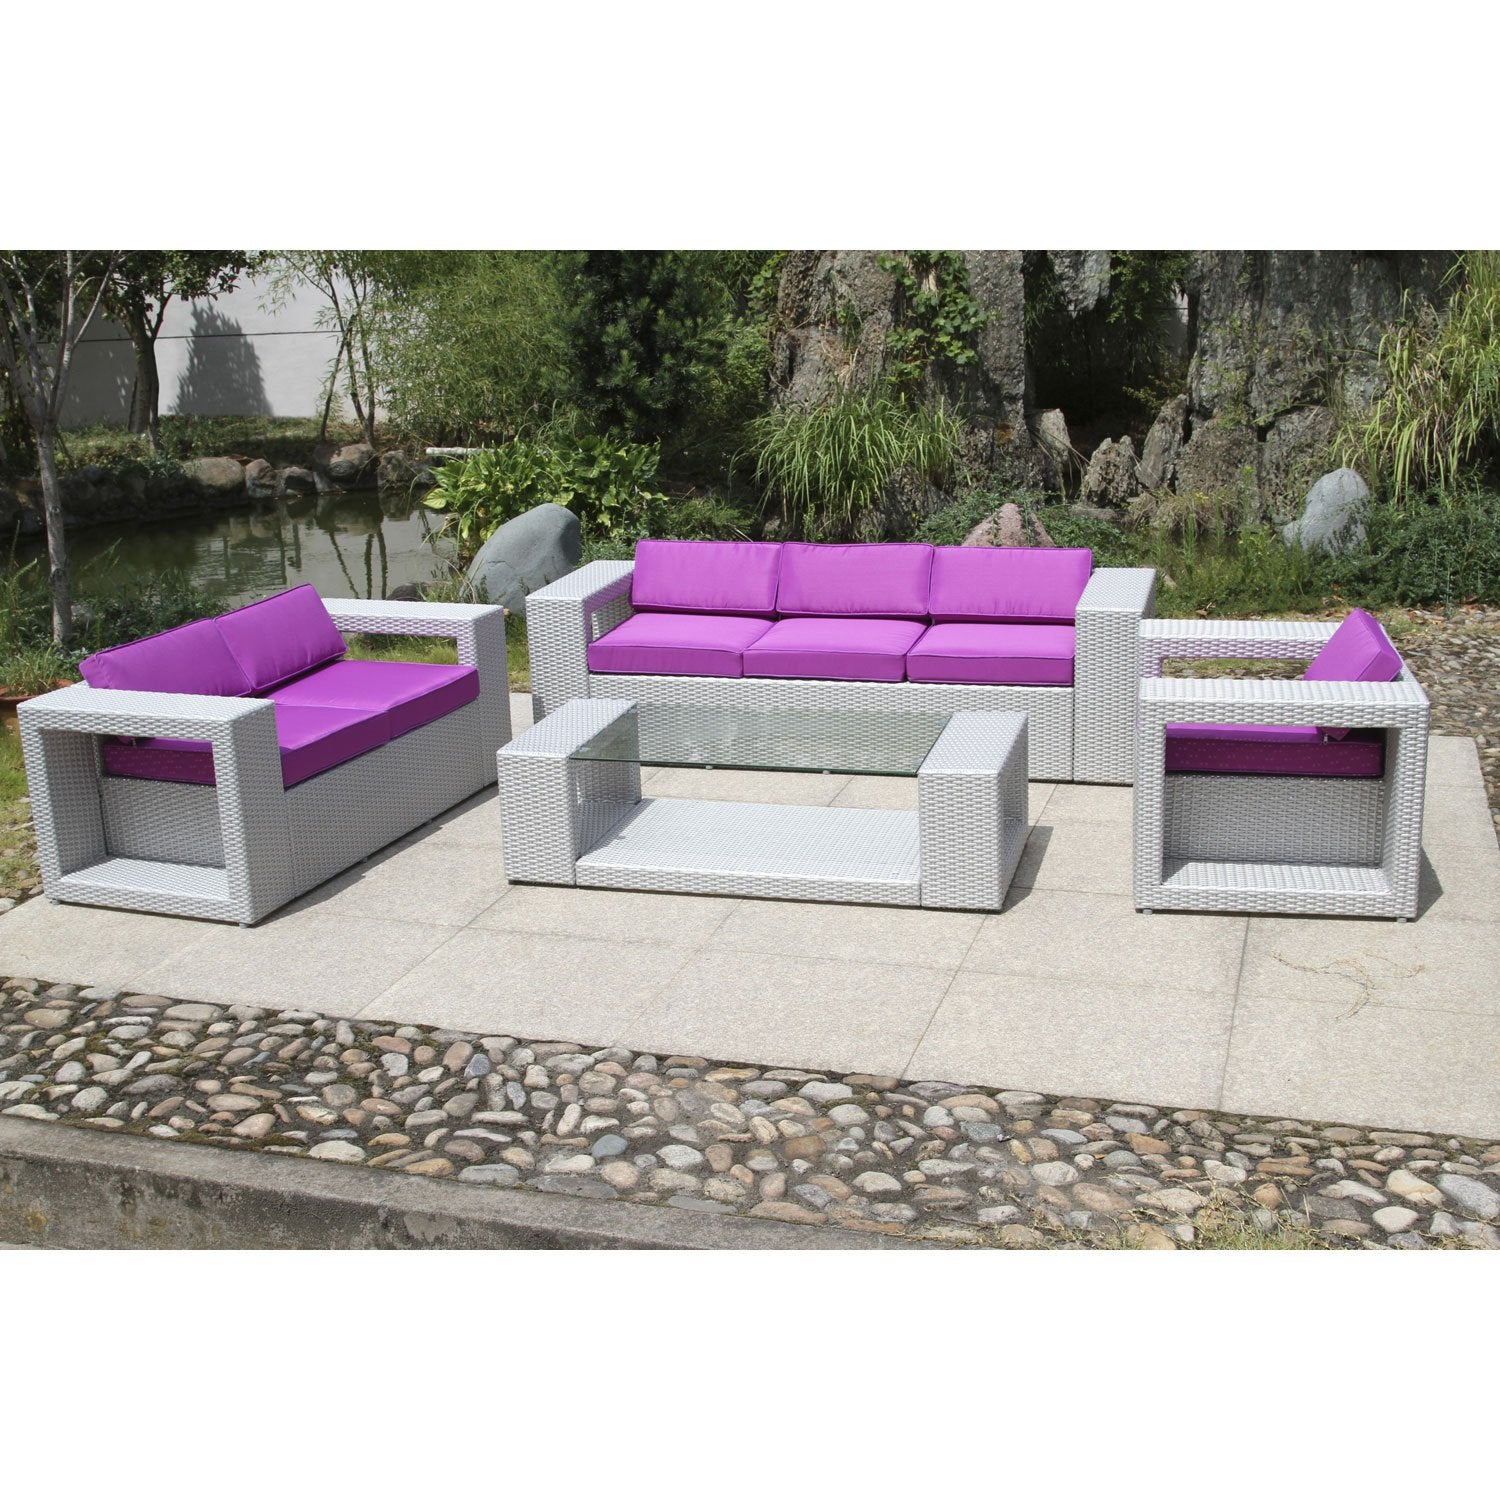 Salon de jardin mediterran e dcb garden leroy merlin for But salon de jardin